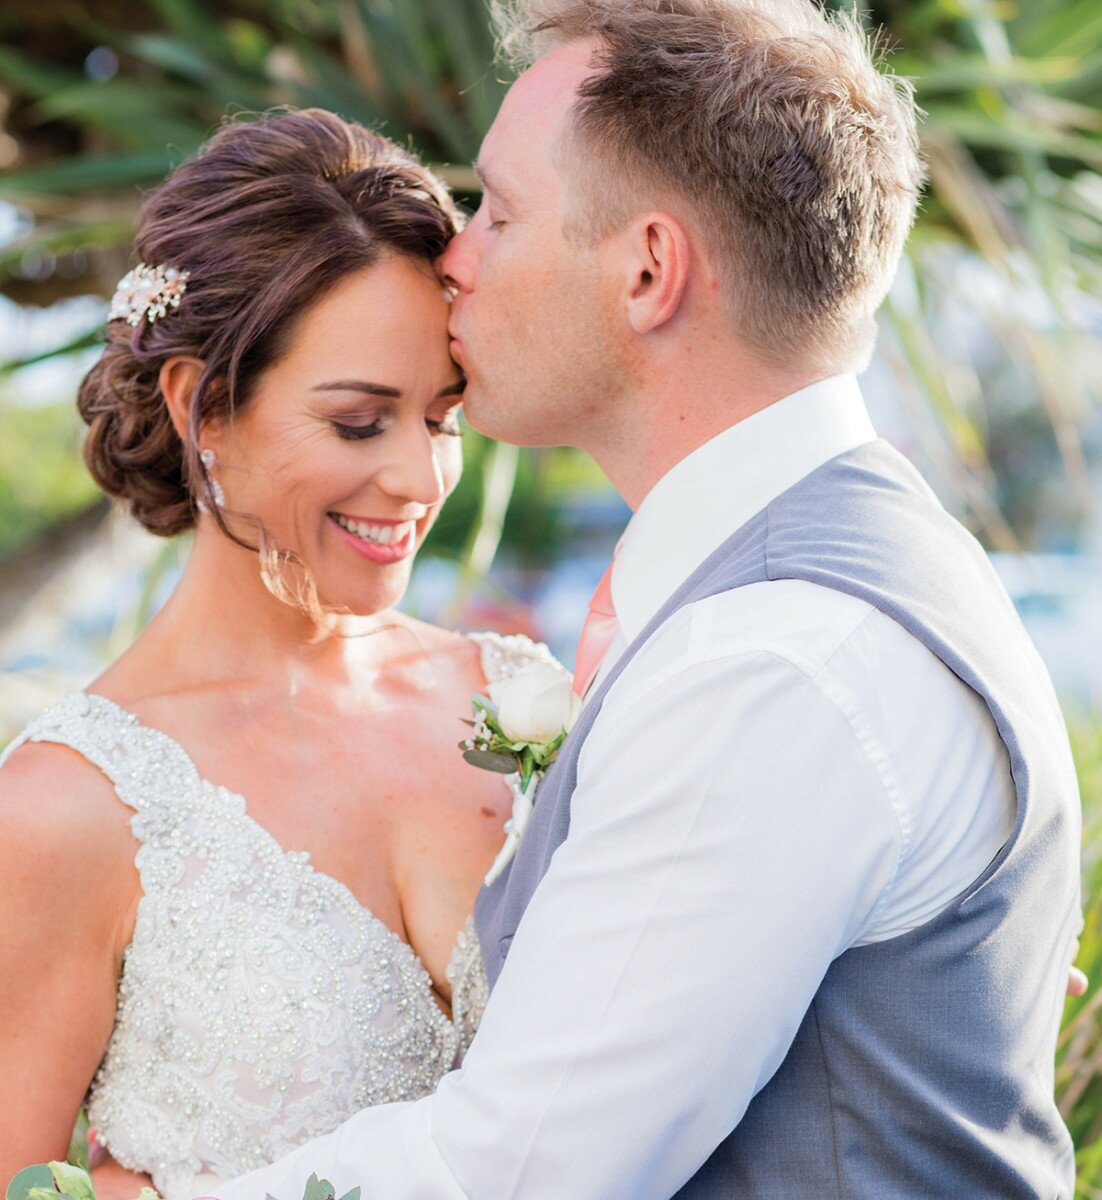 Profile Magazine Online blink Bride Guide 2018: Hair and make-up